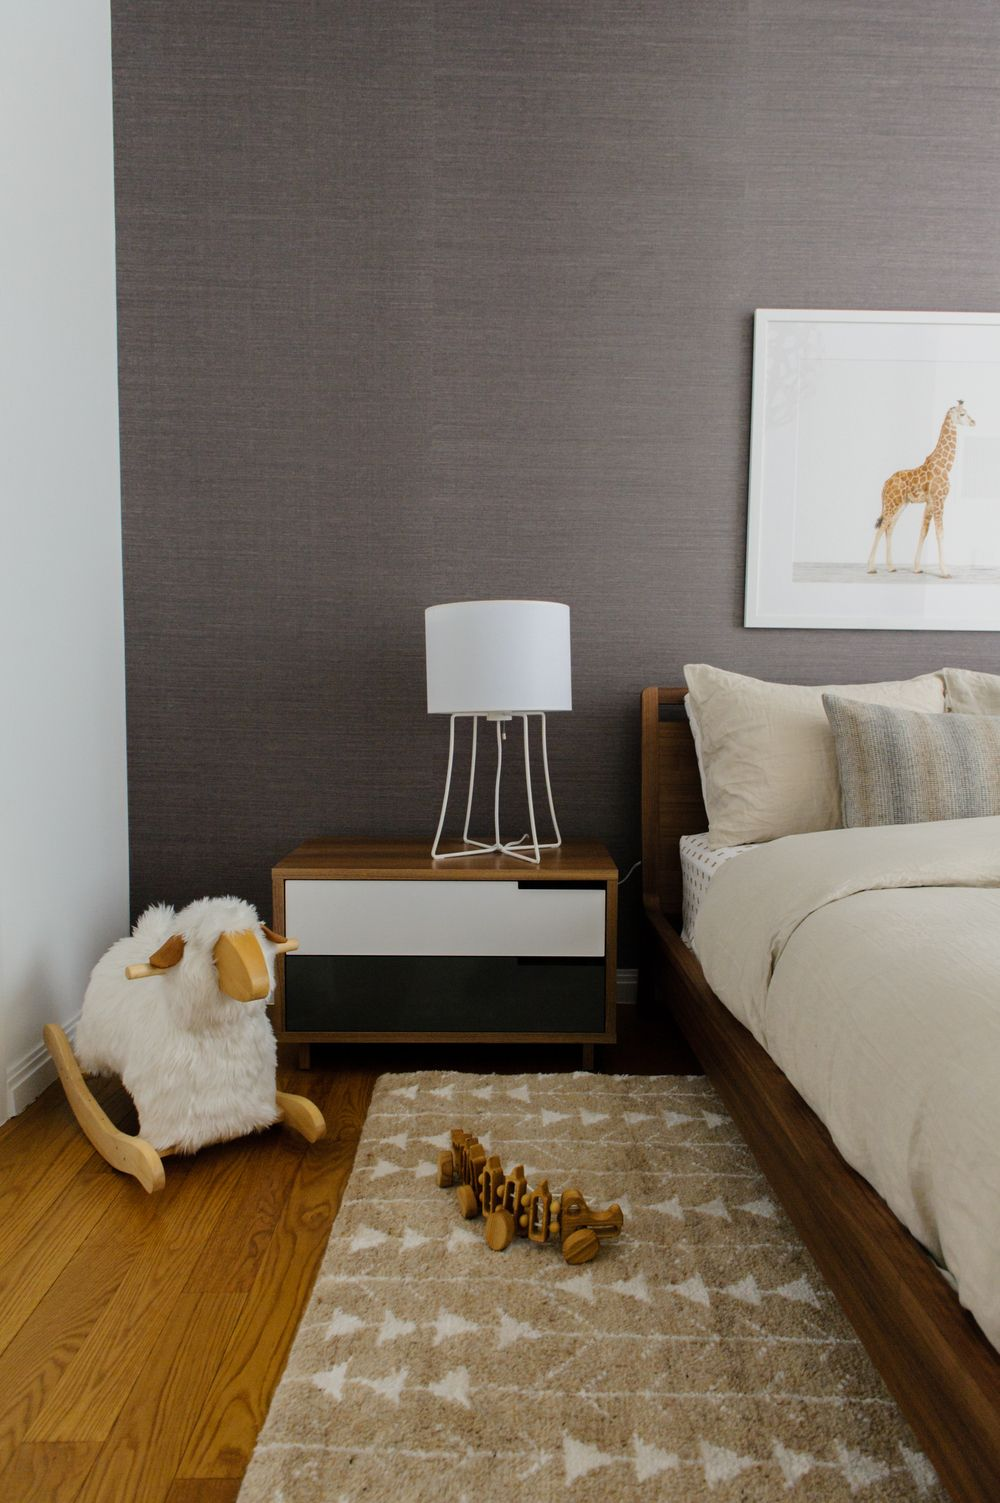 Bedside table and bed - Chelsea Brooklyn Children S Room Modu Licious Bedside Table And Woodrow Bed